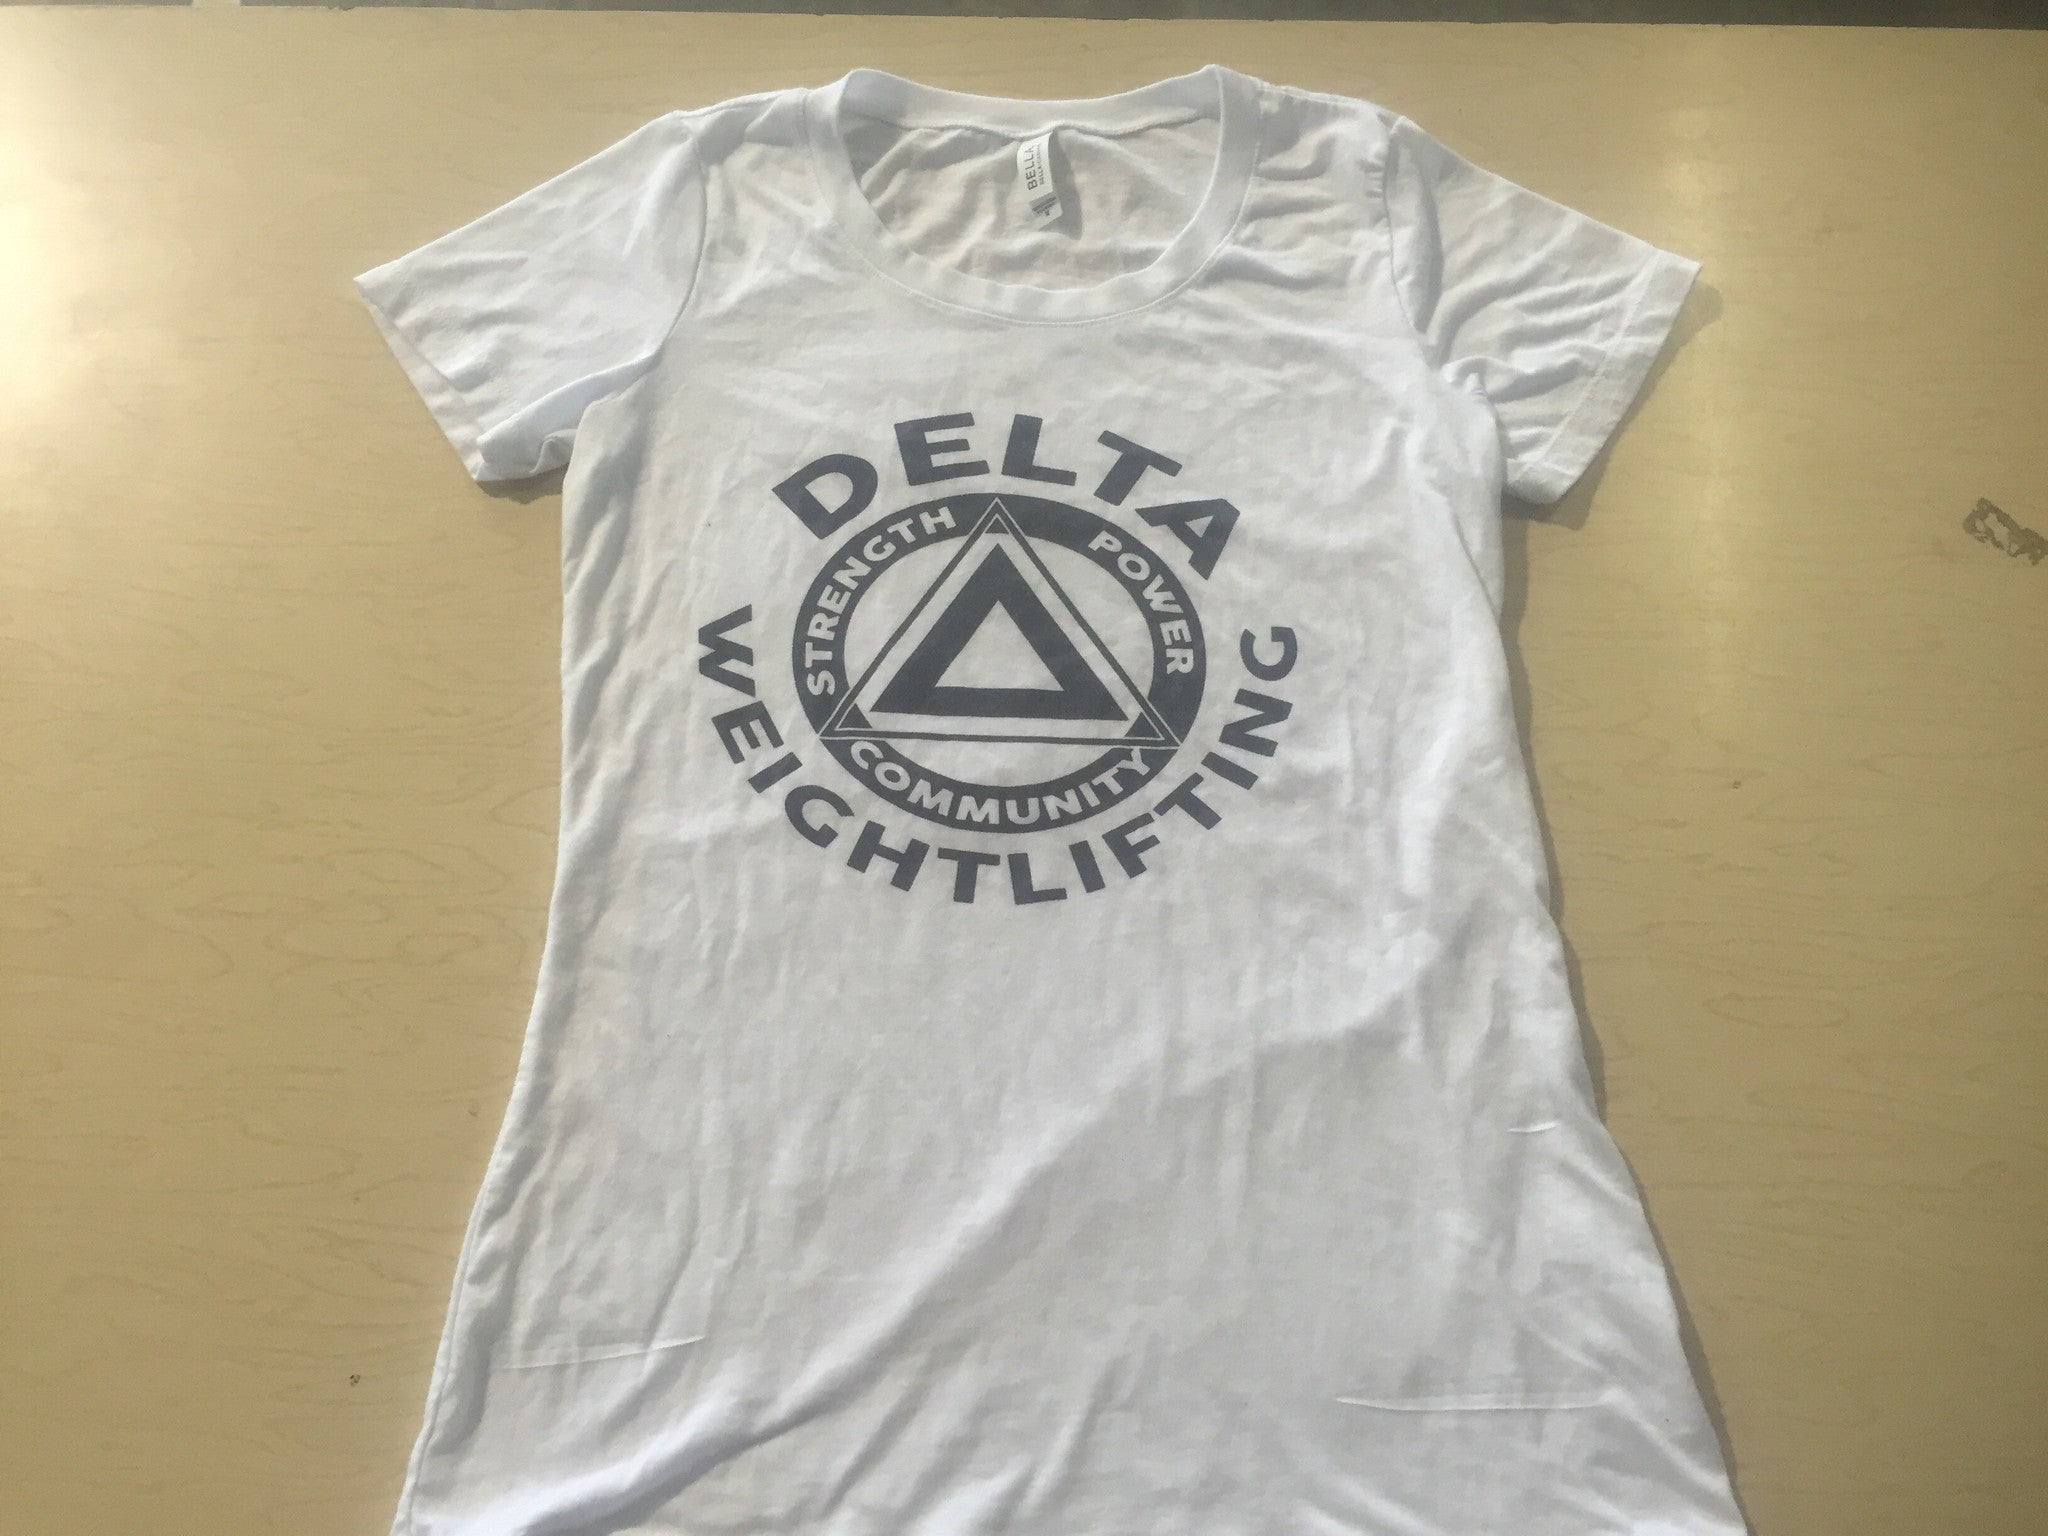 DELTA Weightlifting Tri-Blend White Women's Shirt